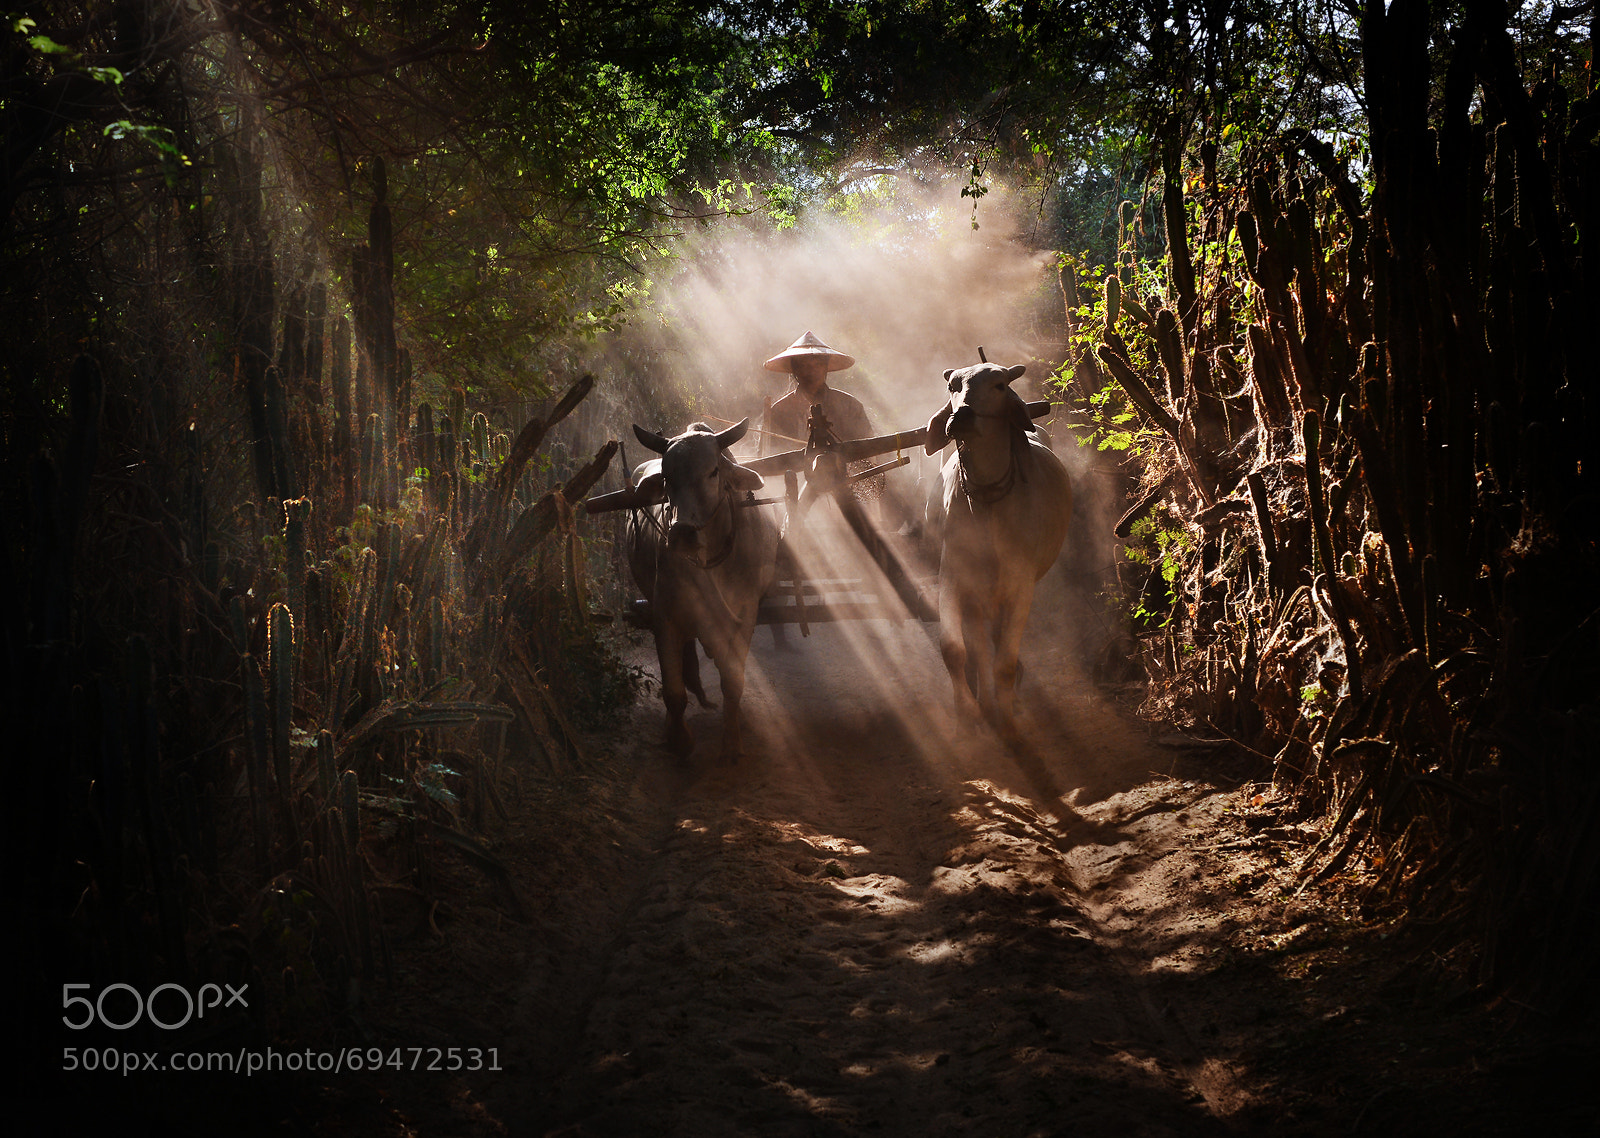 Photograph Cart Rider by Weerapong Chaipuck on 500px